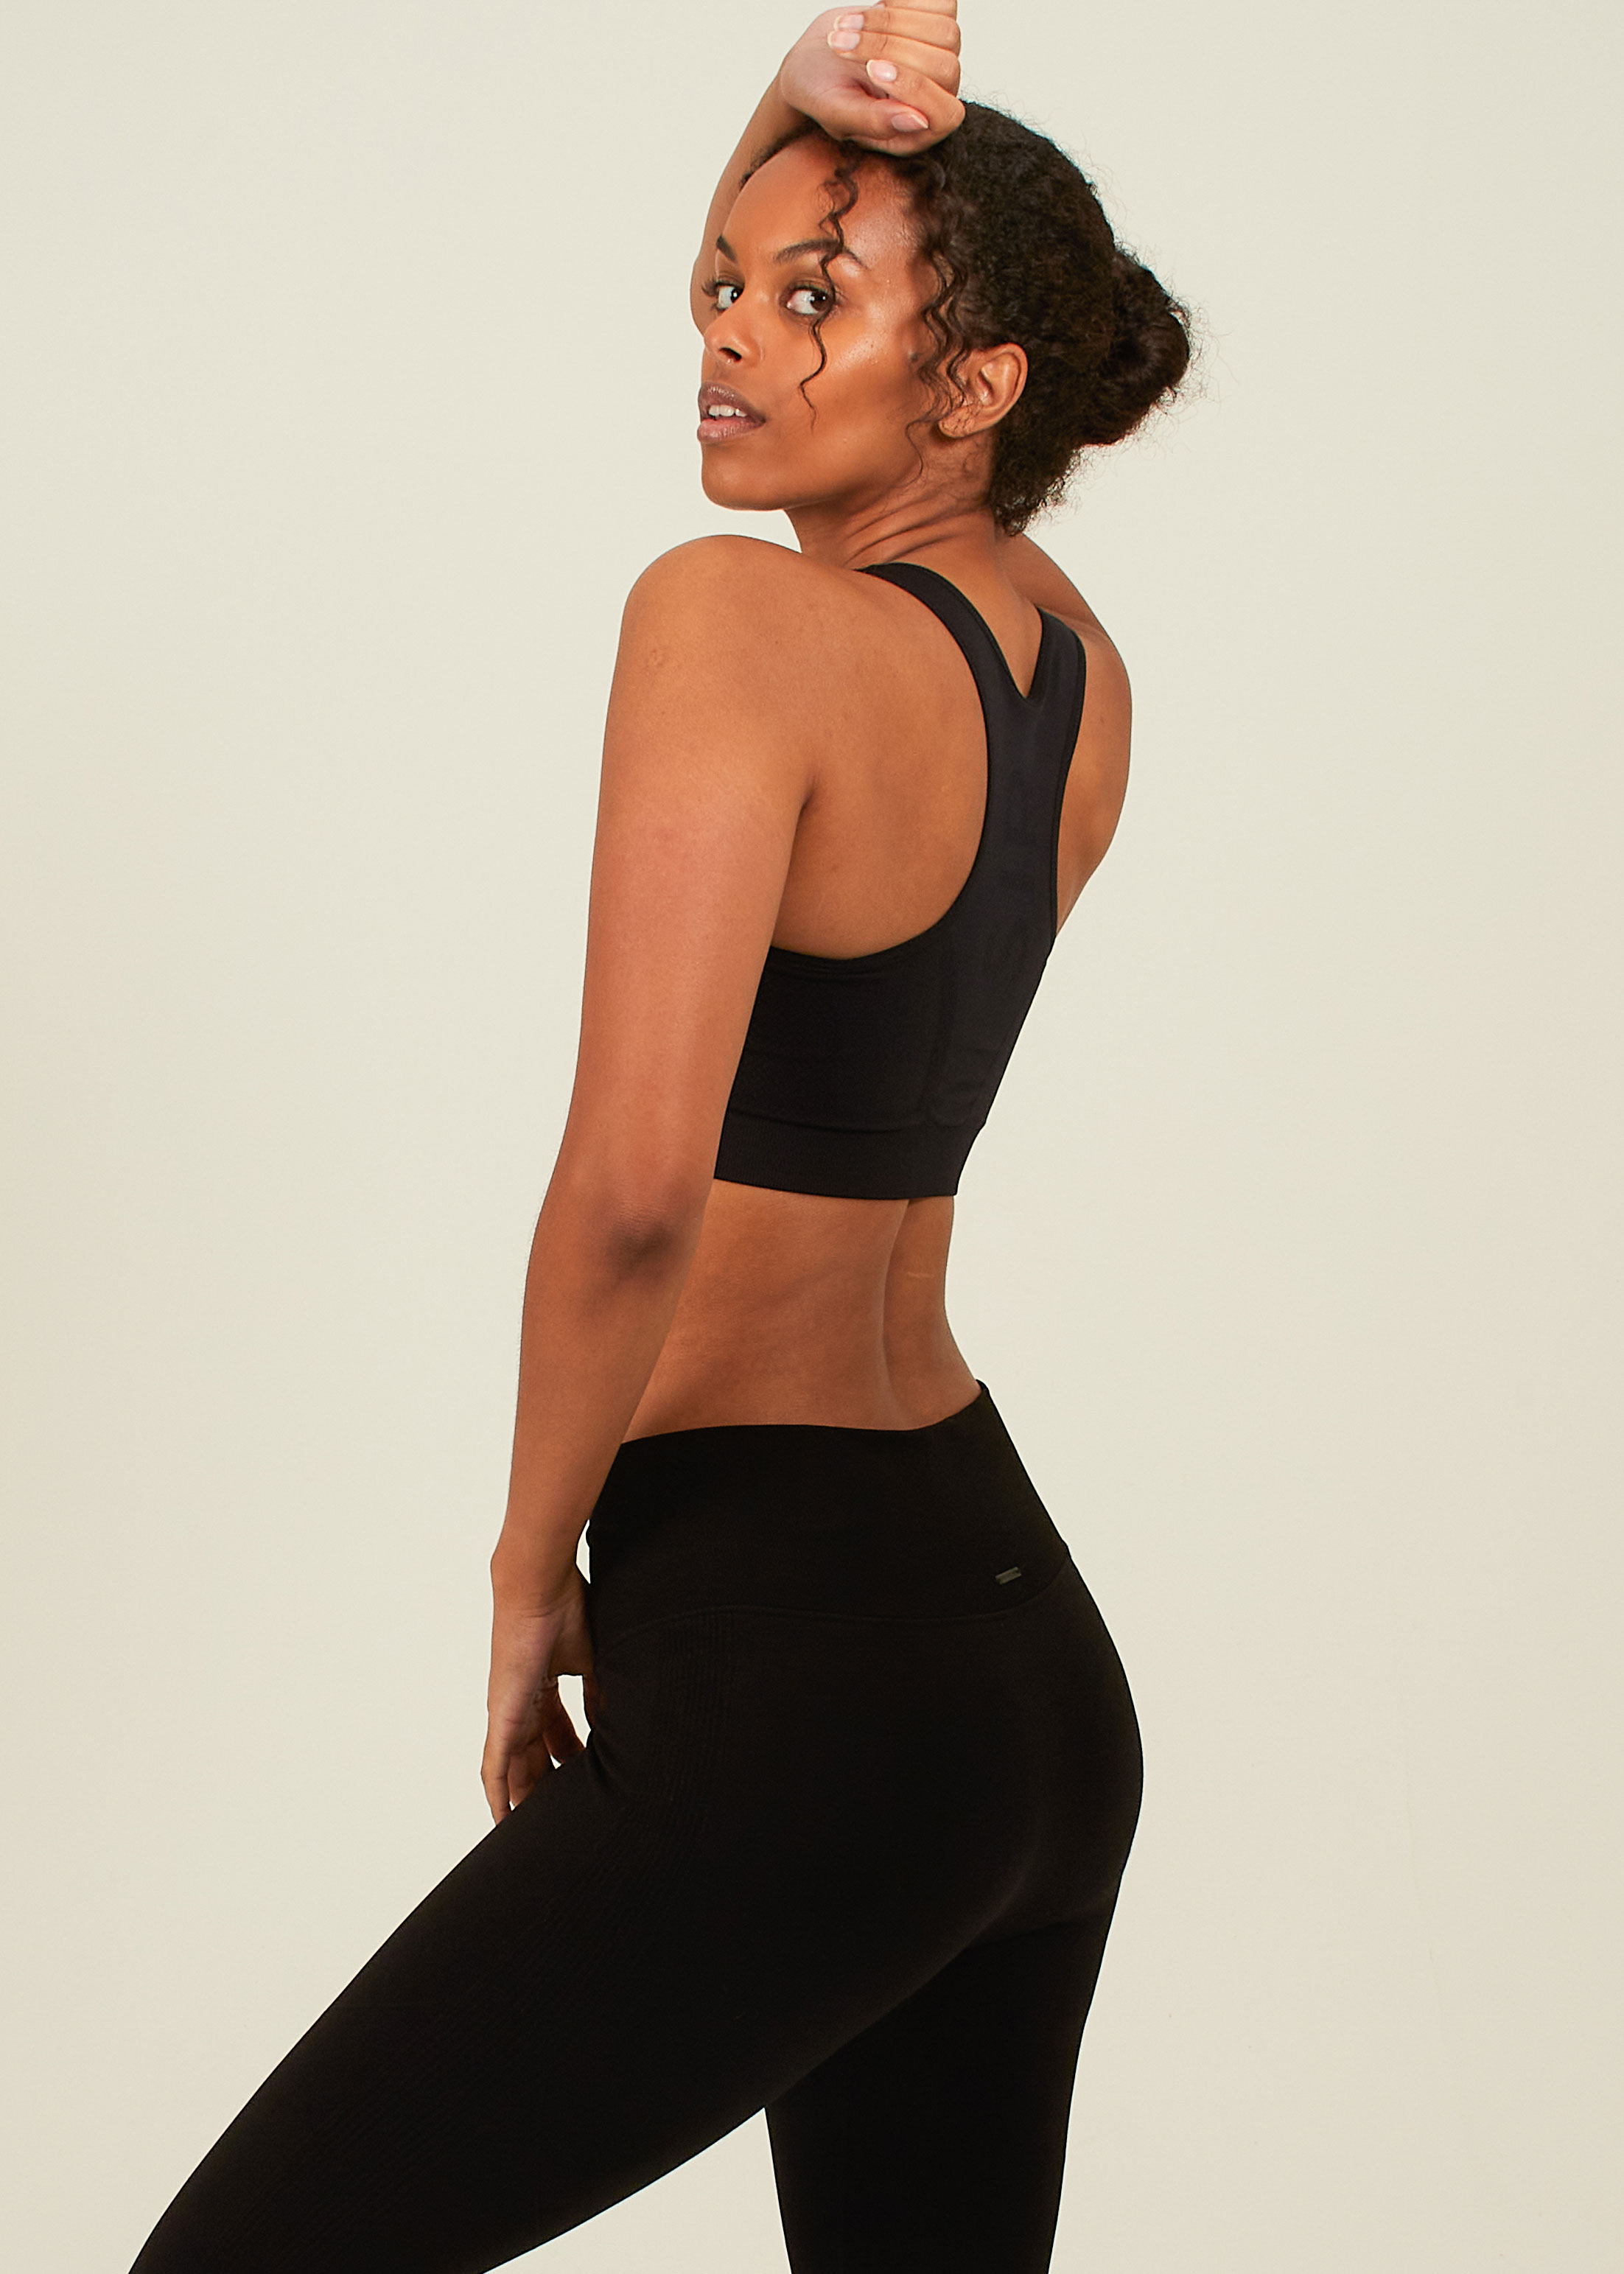 SHOP THE LOOK - SEAMLESS BLACK